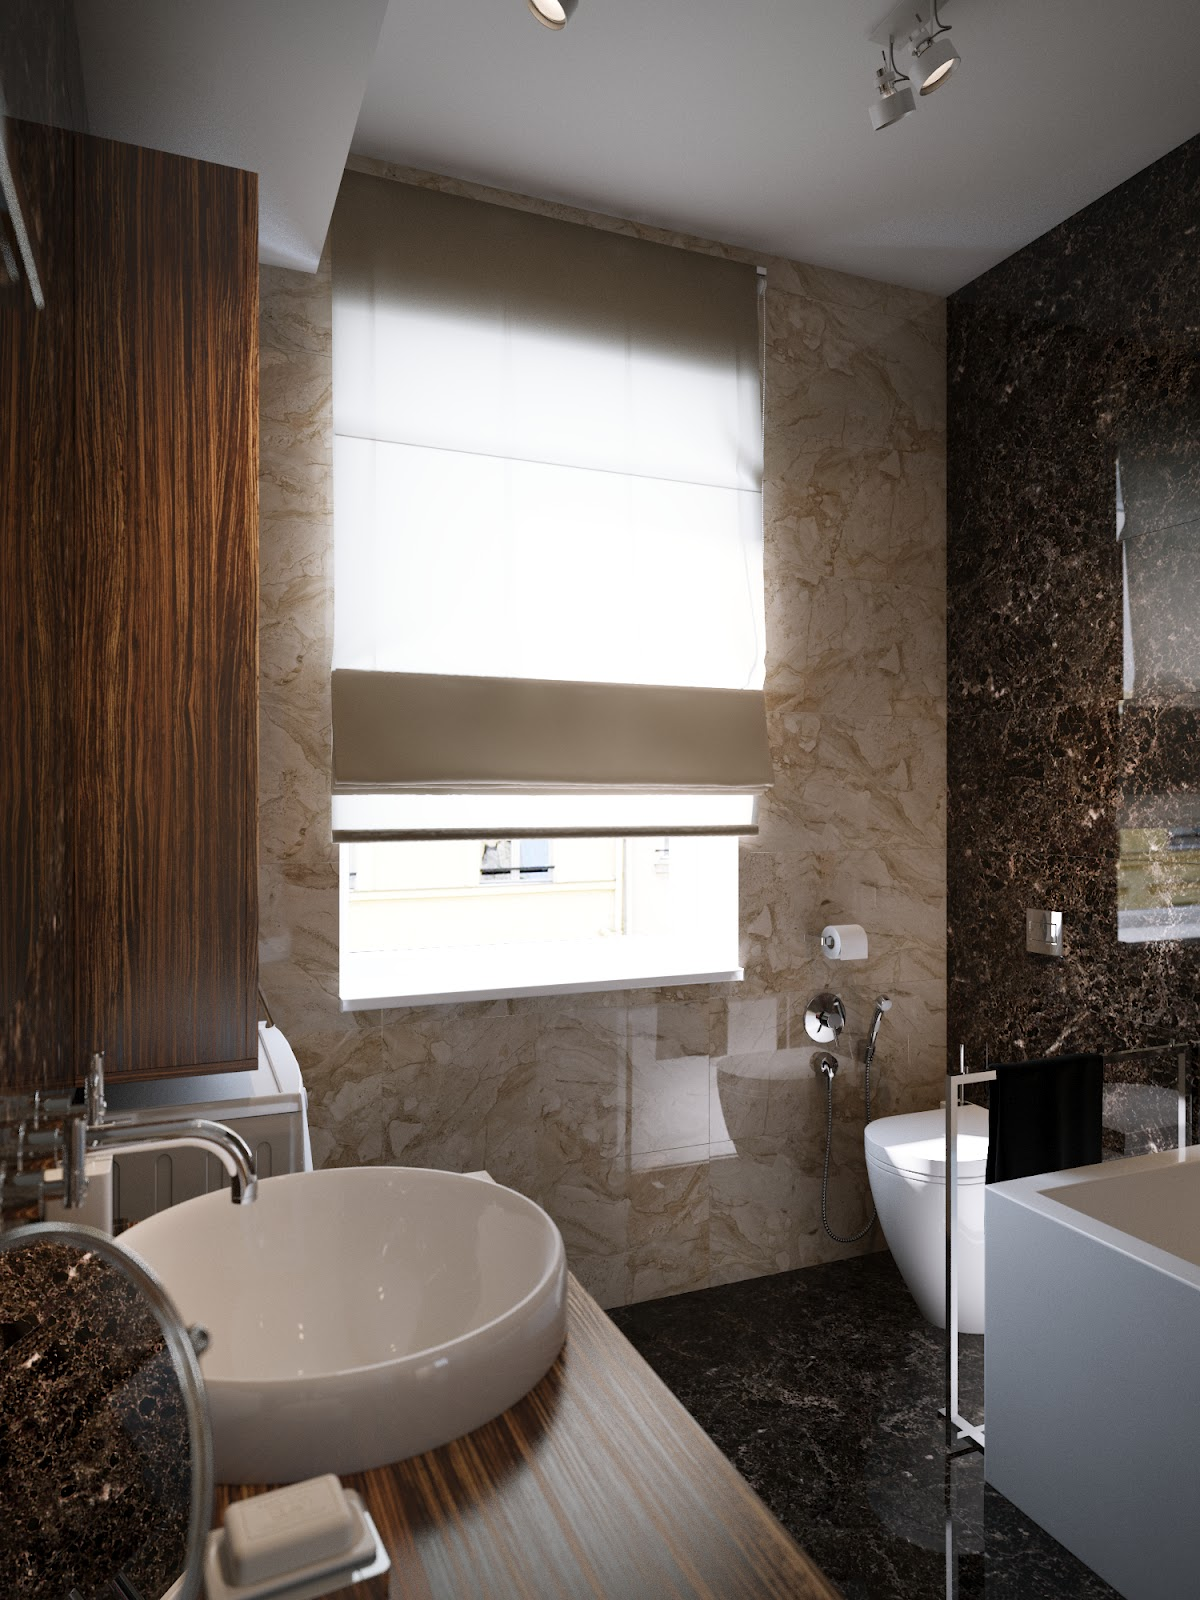 Modern bathroom design scheme interior design ideas How to design a modern bathroom